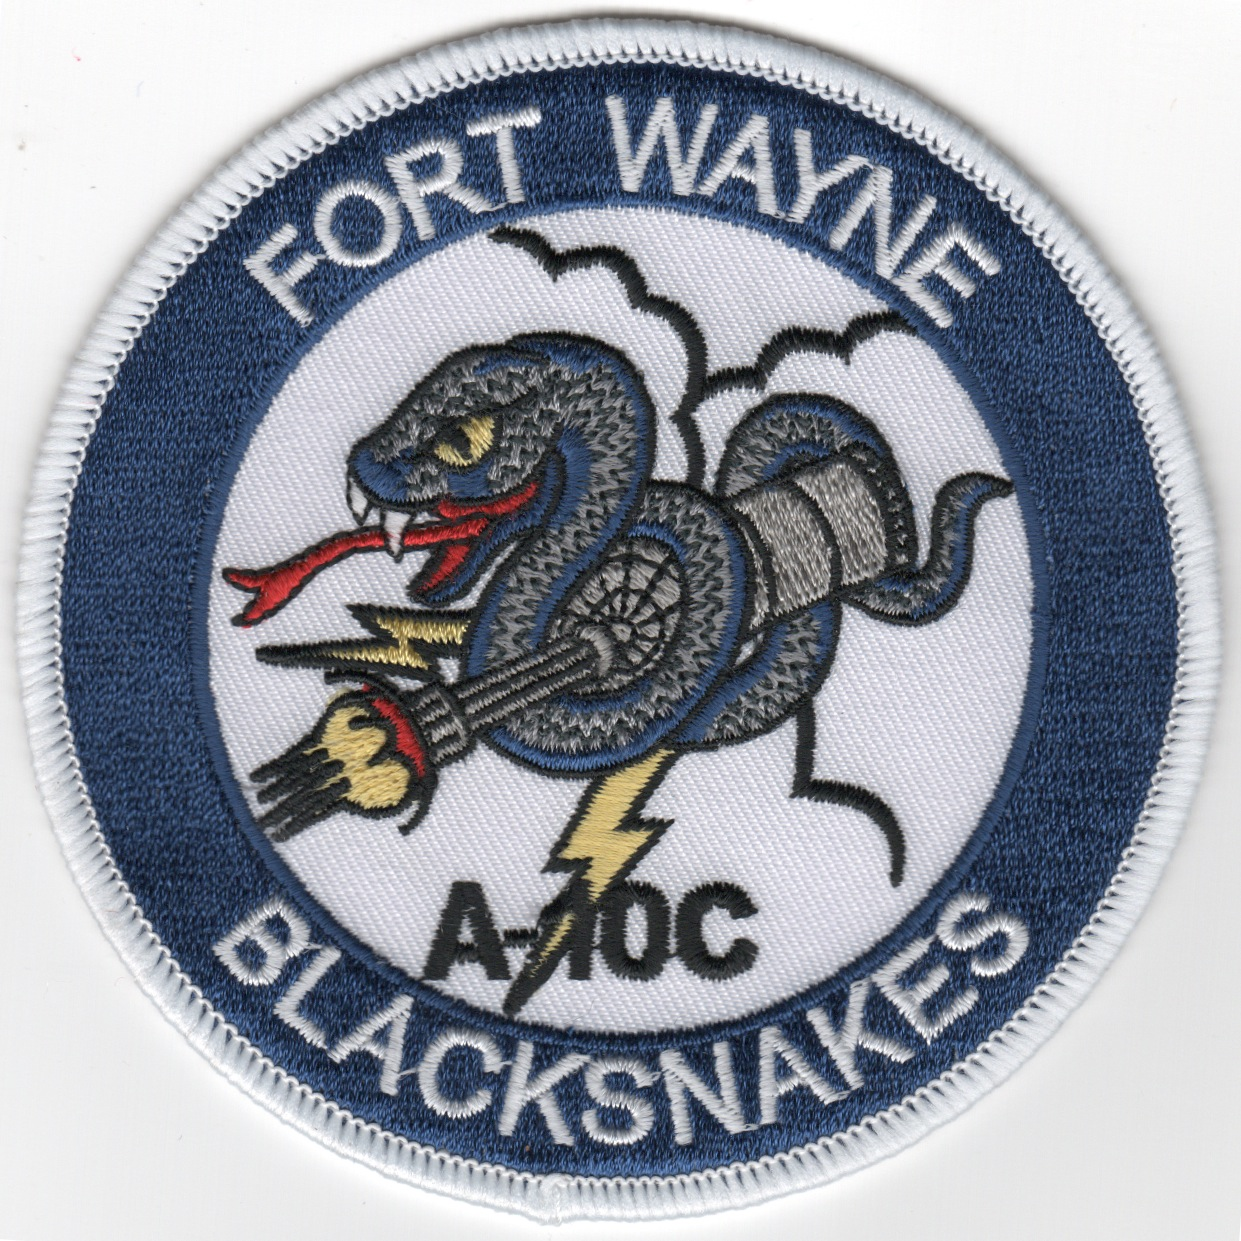 163FS 'Ft. Wayne/Blacksnakes' Patch